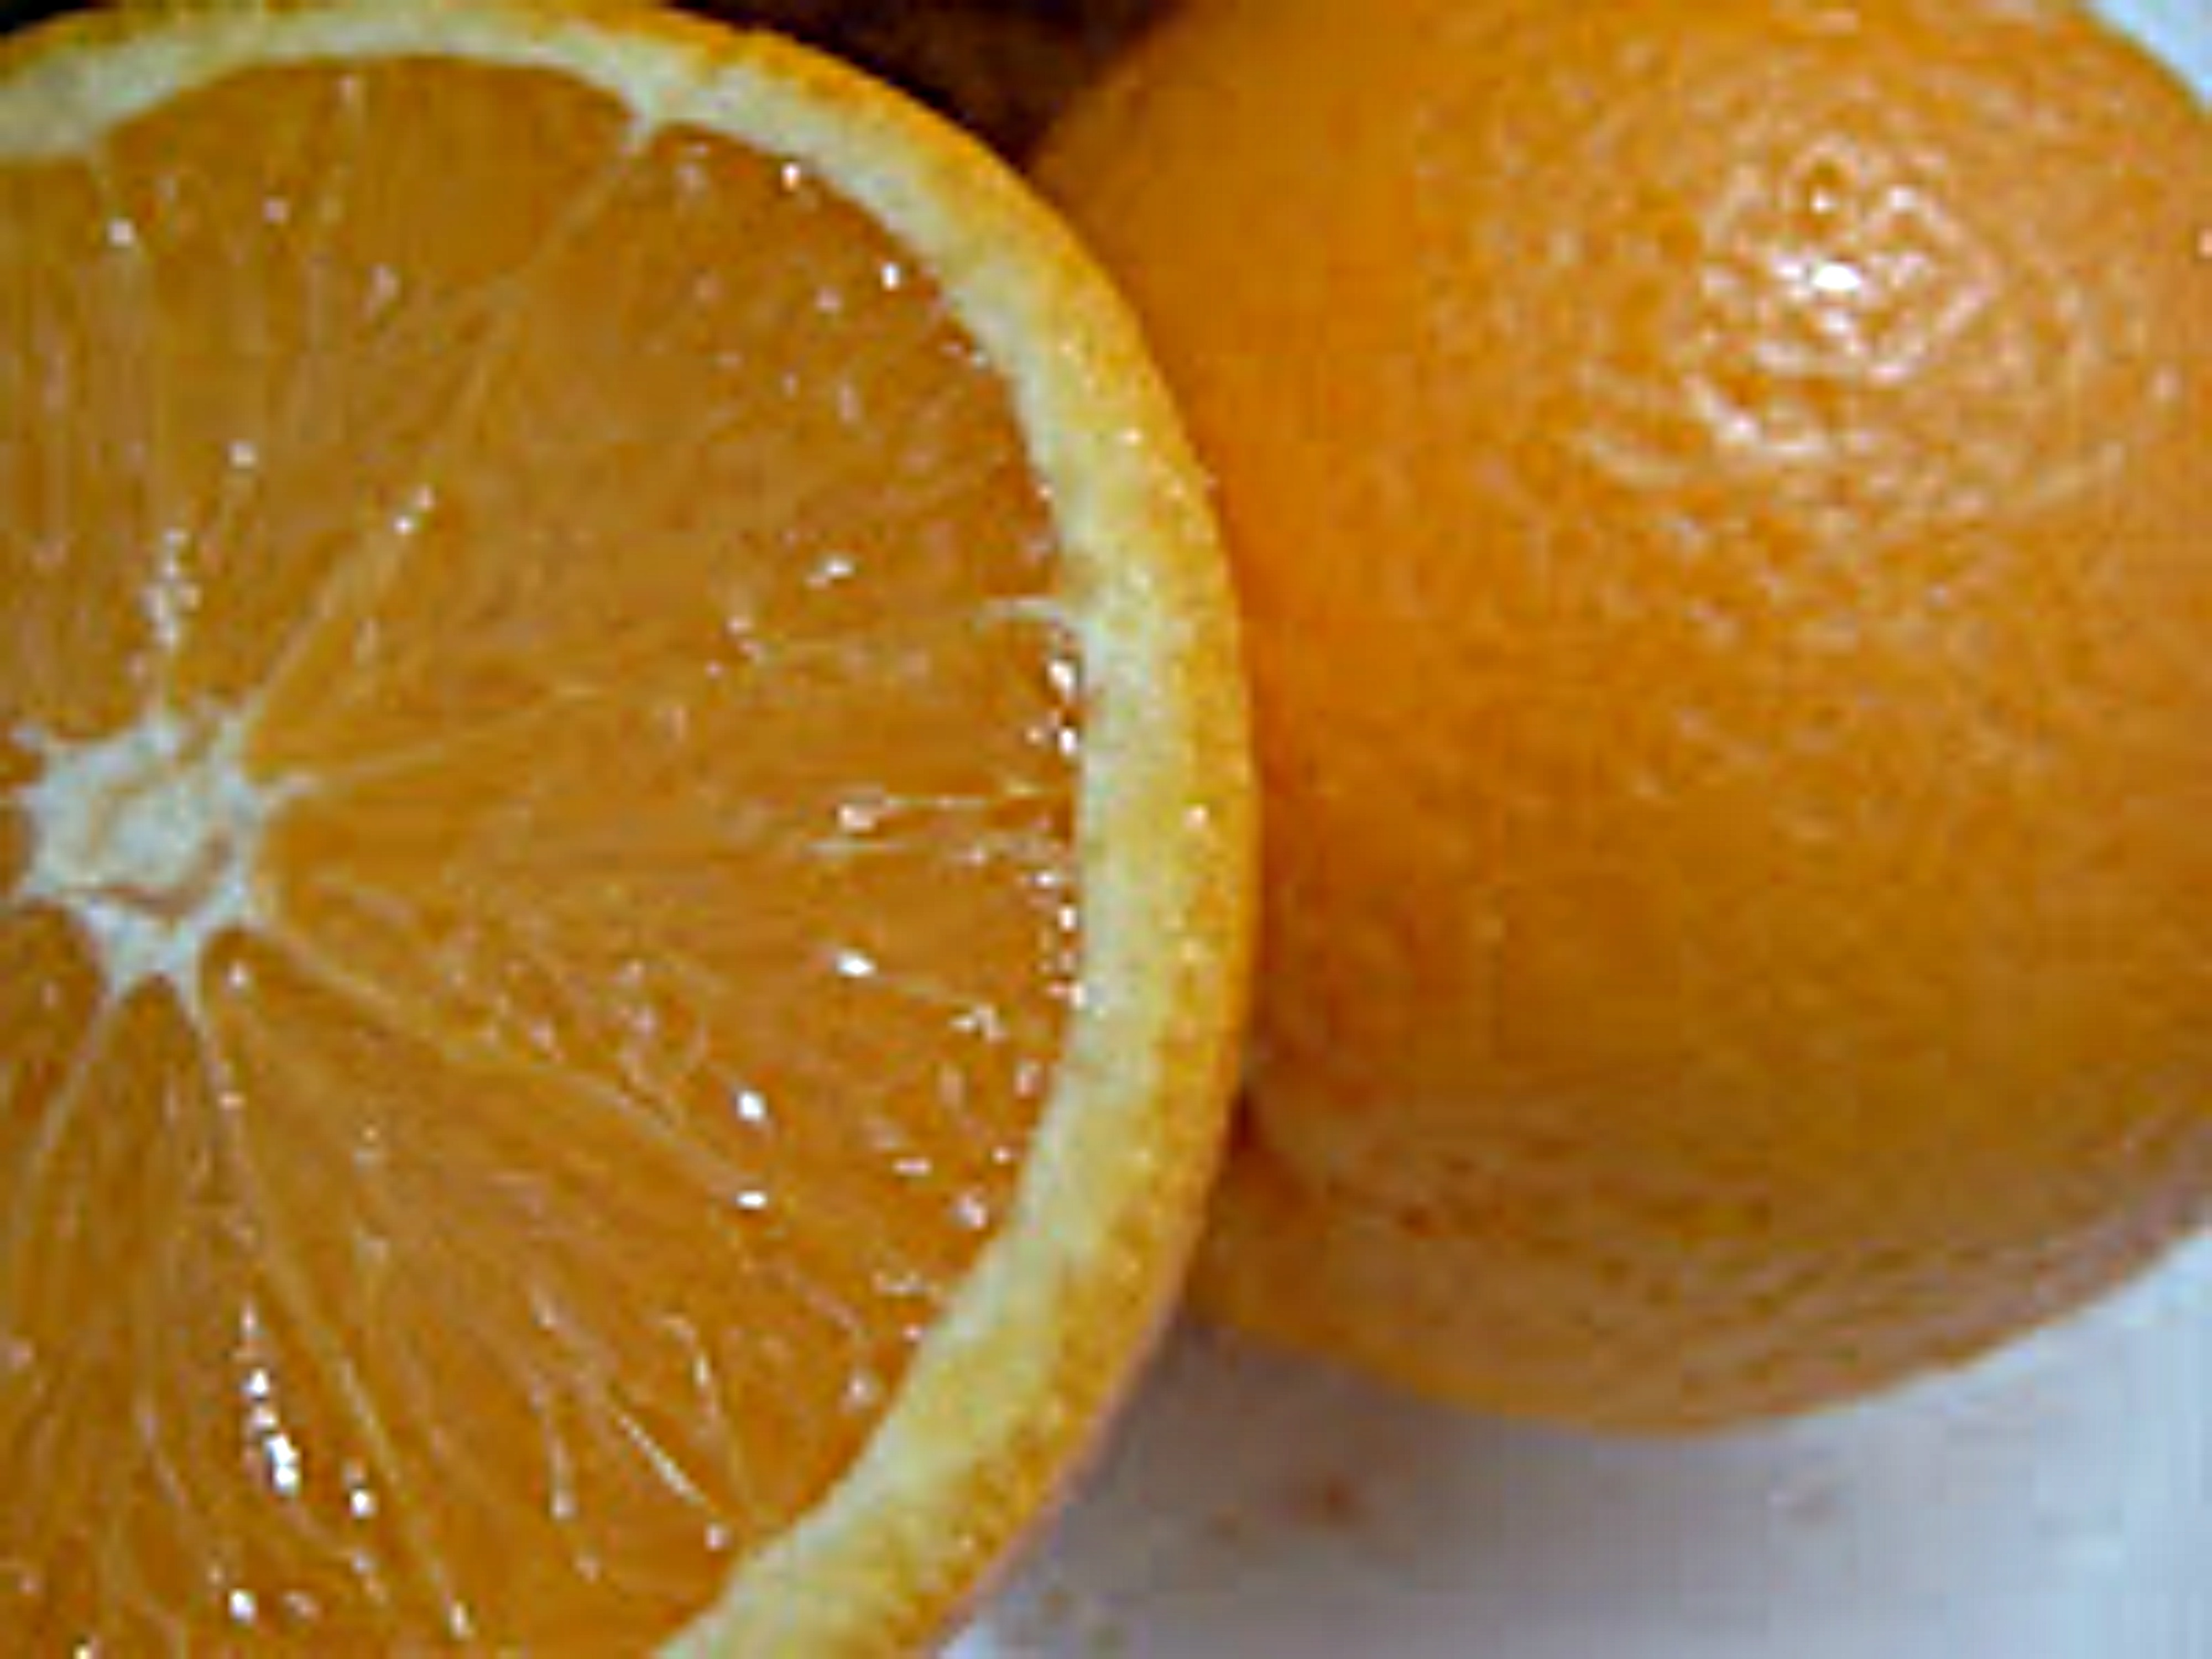 Ask An Aromatherapist: Sweet Orange Essential Oil Safety